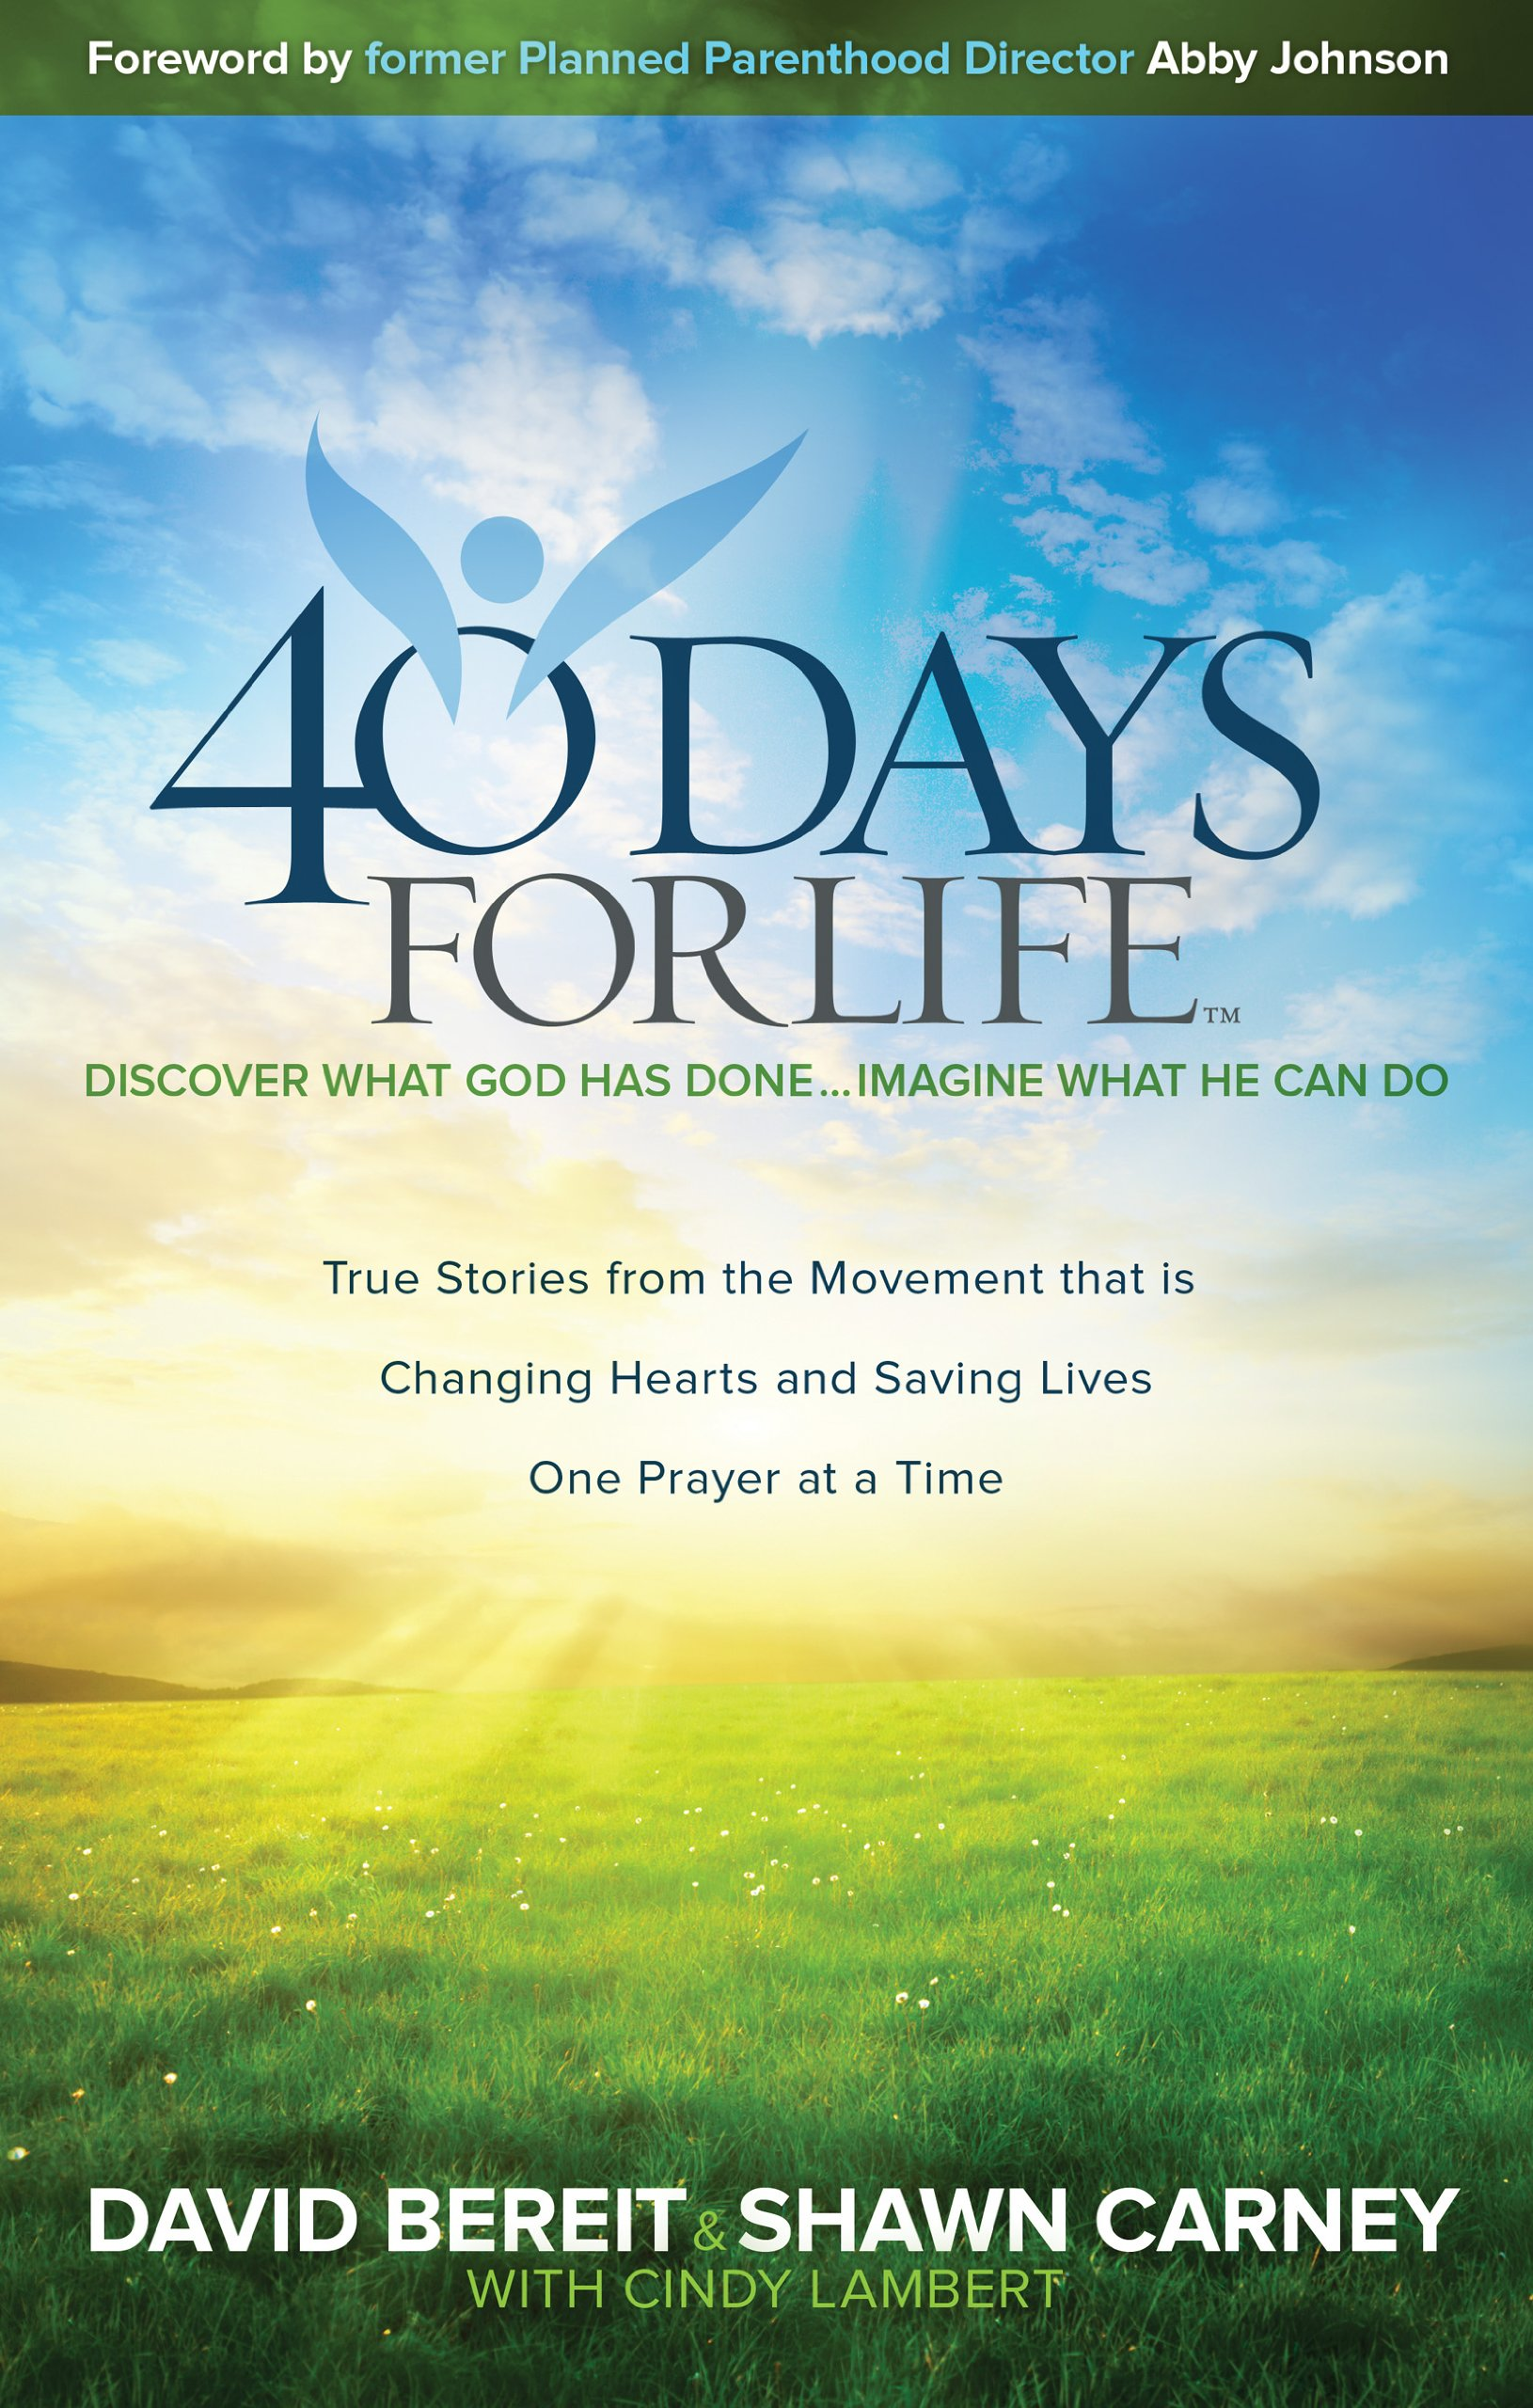 40 days for life discover what god has doneagine what he can 40 days for life discover what god has doneagine what he can do david bereit shawn carney with cindy lambert 9780988287020 amazon books stopboris Image collections